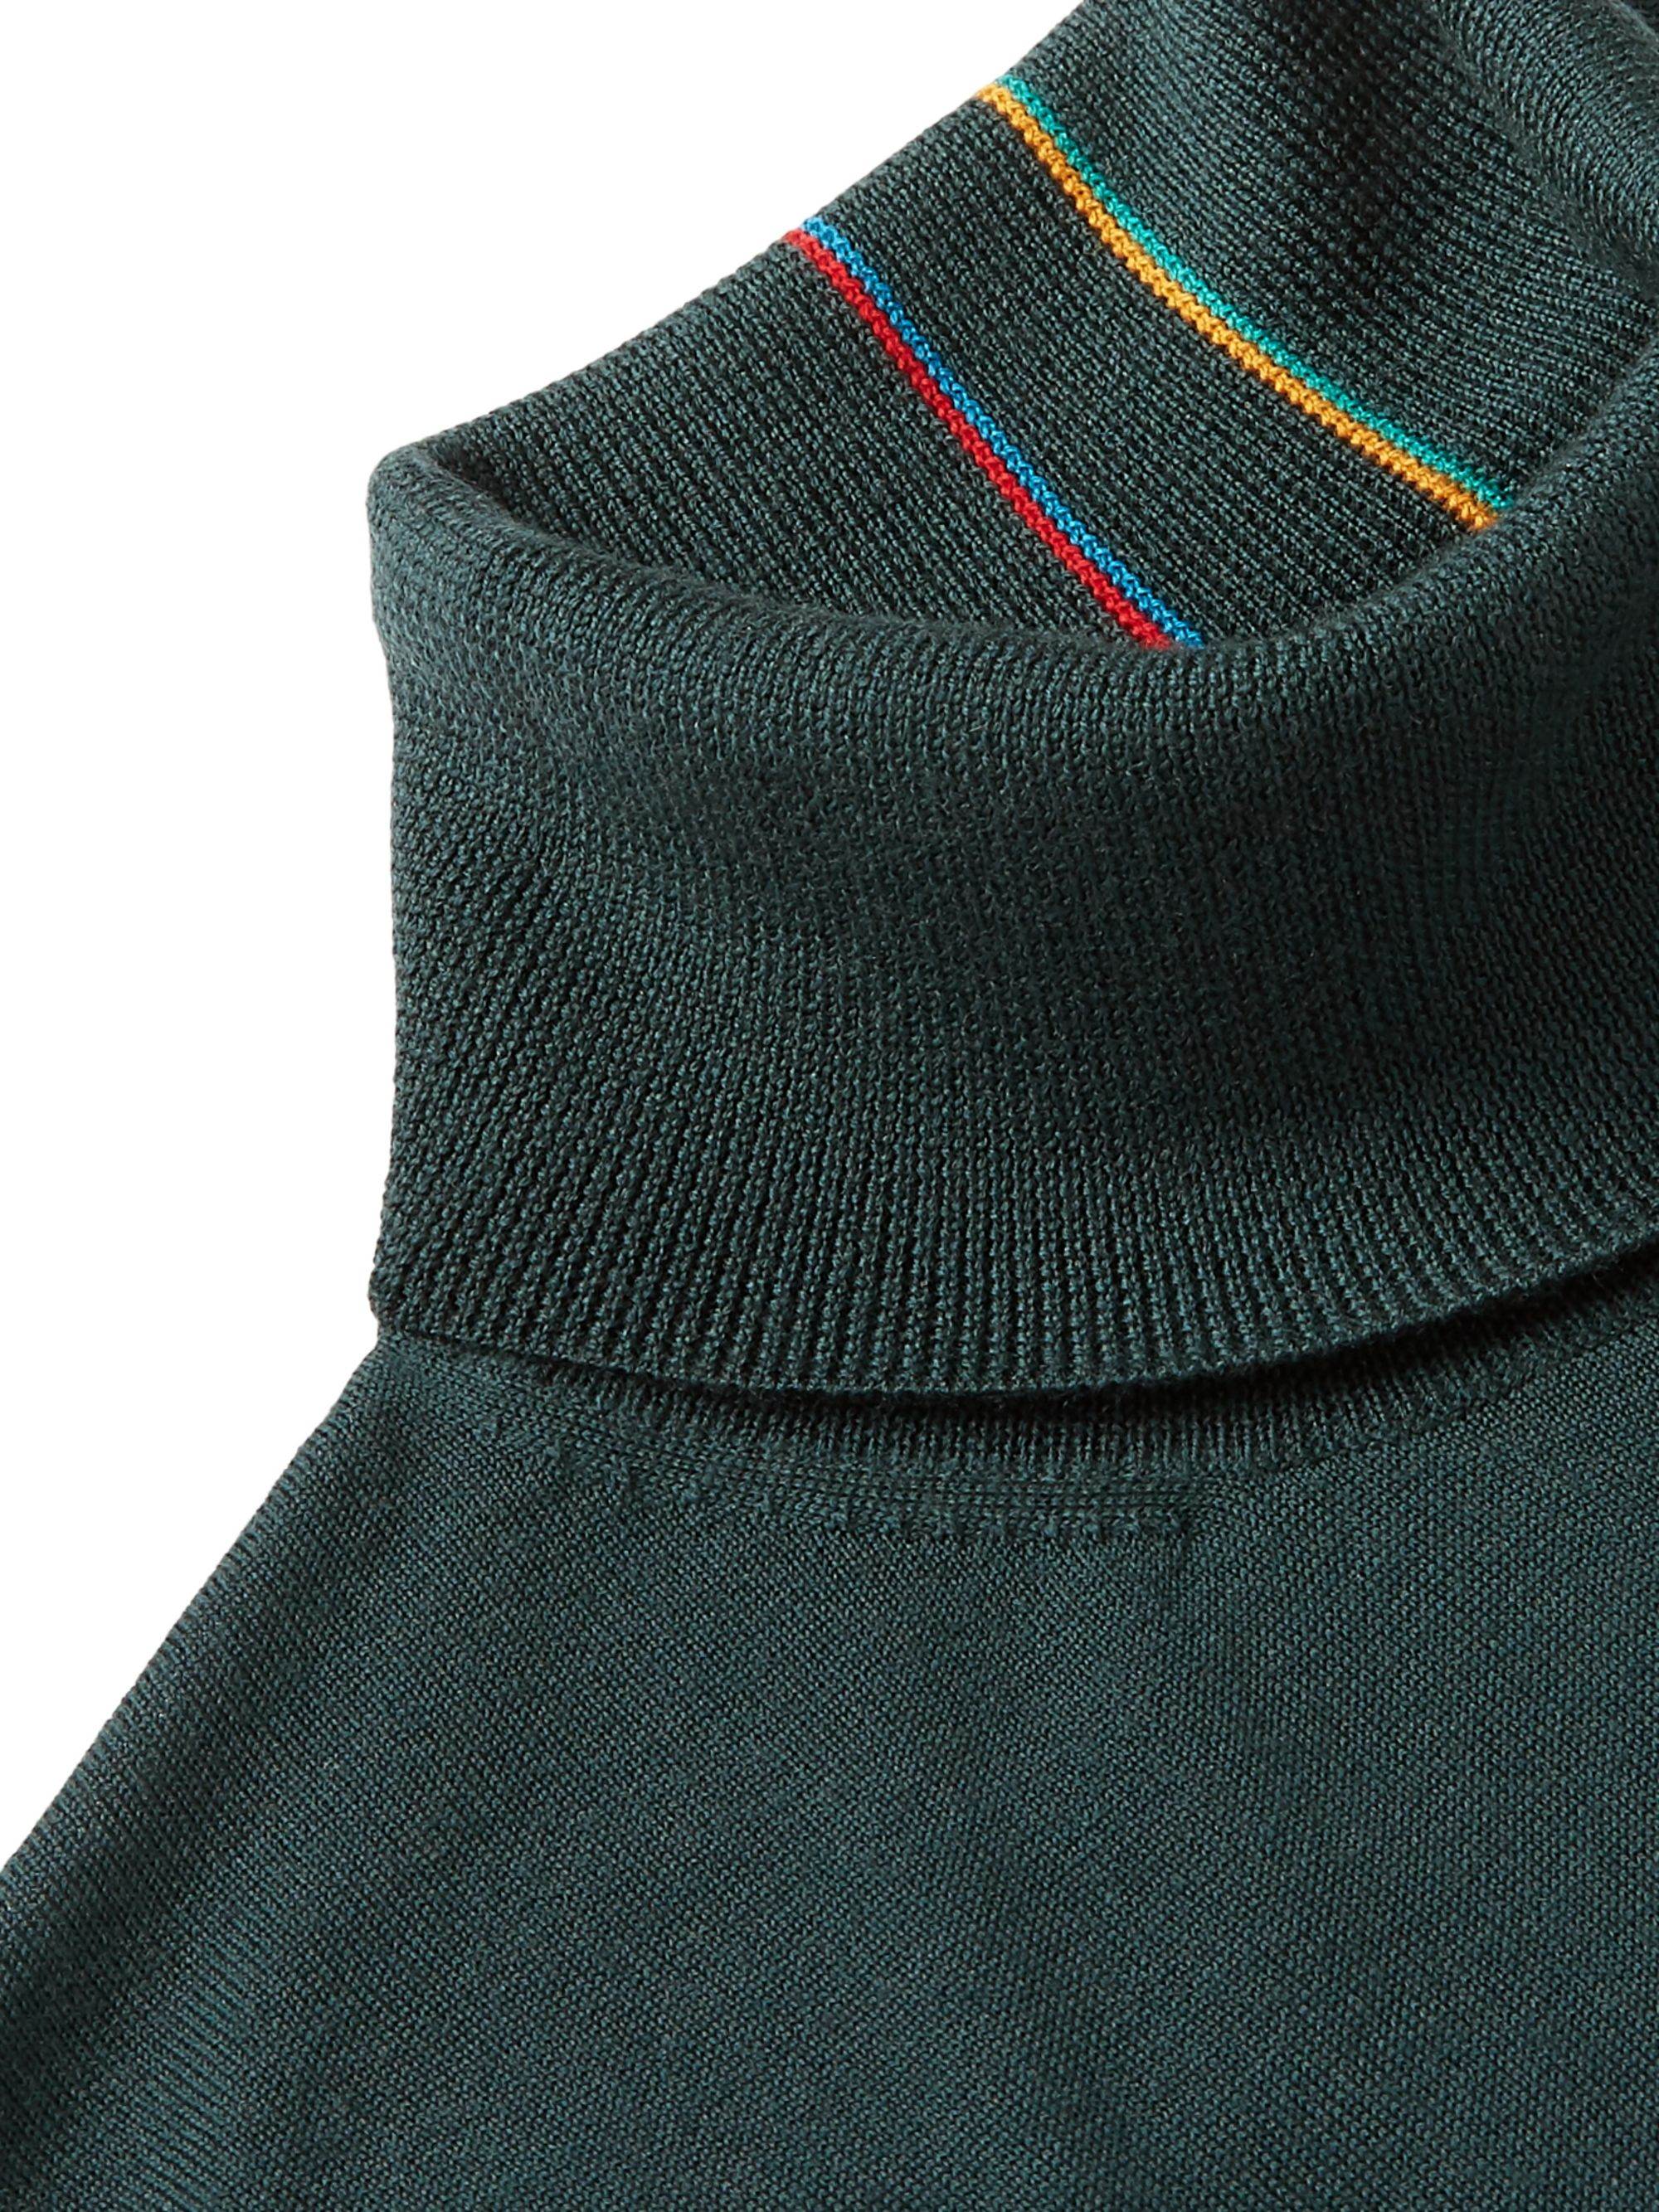 Paul Smith Merino Wool Rollneck Sweater